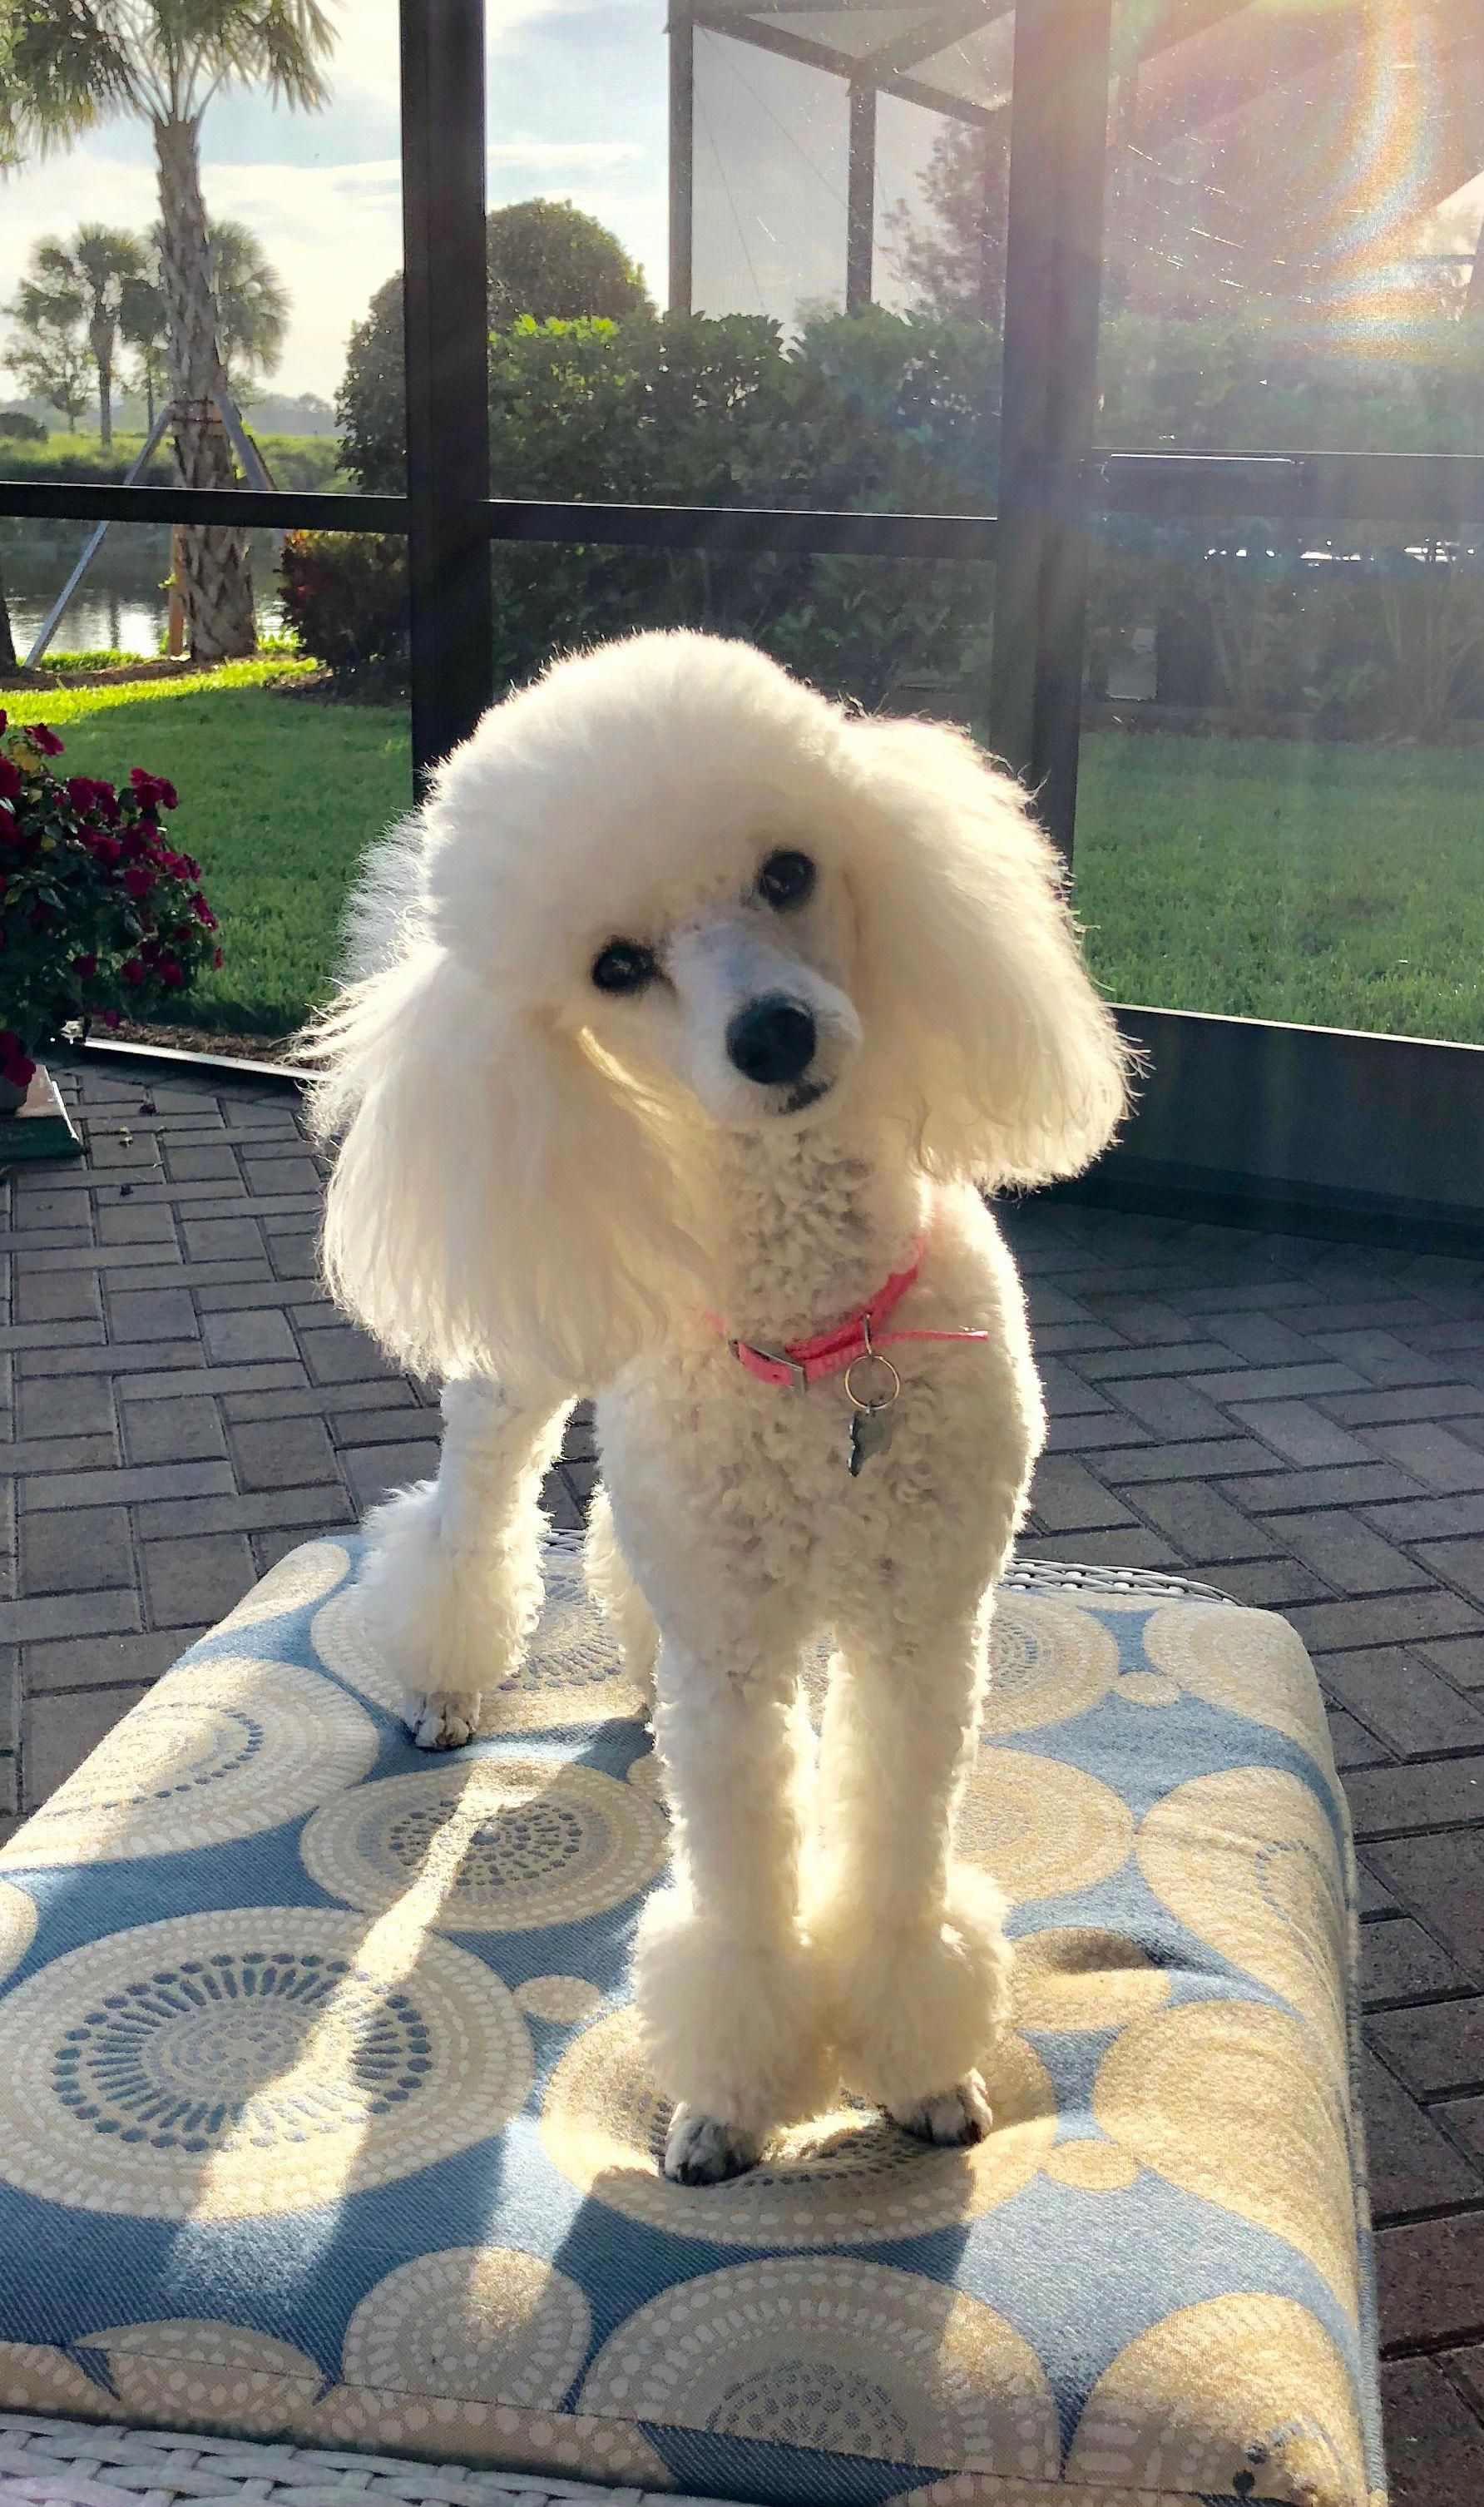 Poodles Are Usually Seen In Films As